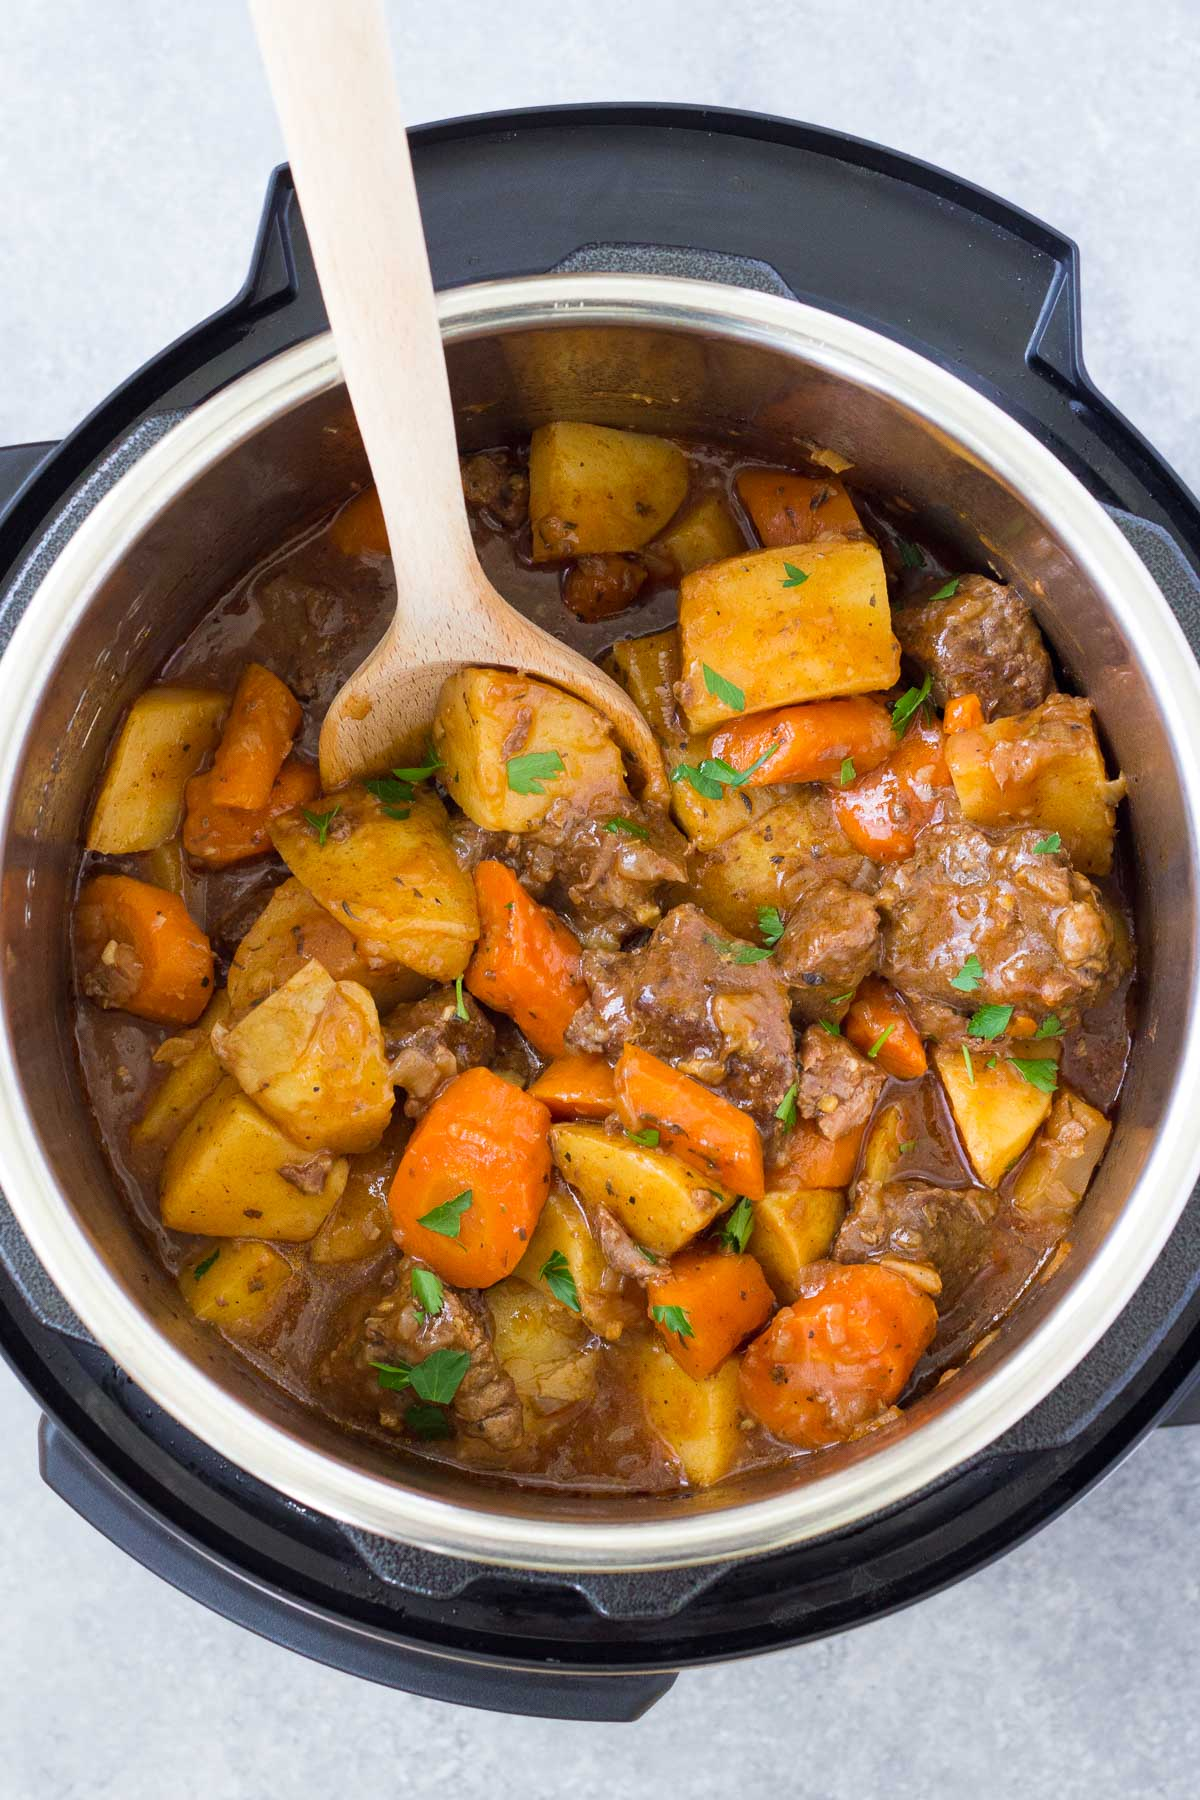 Beef stew after thickening in an Instant Pot.